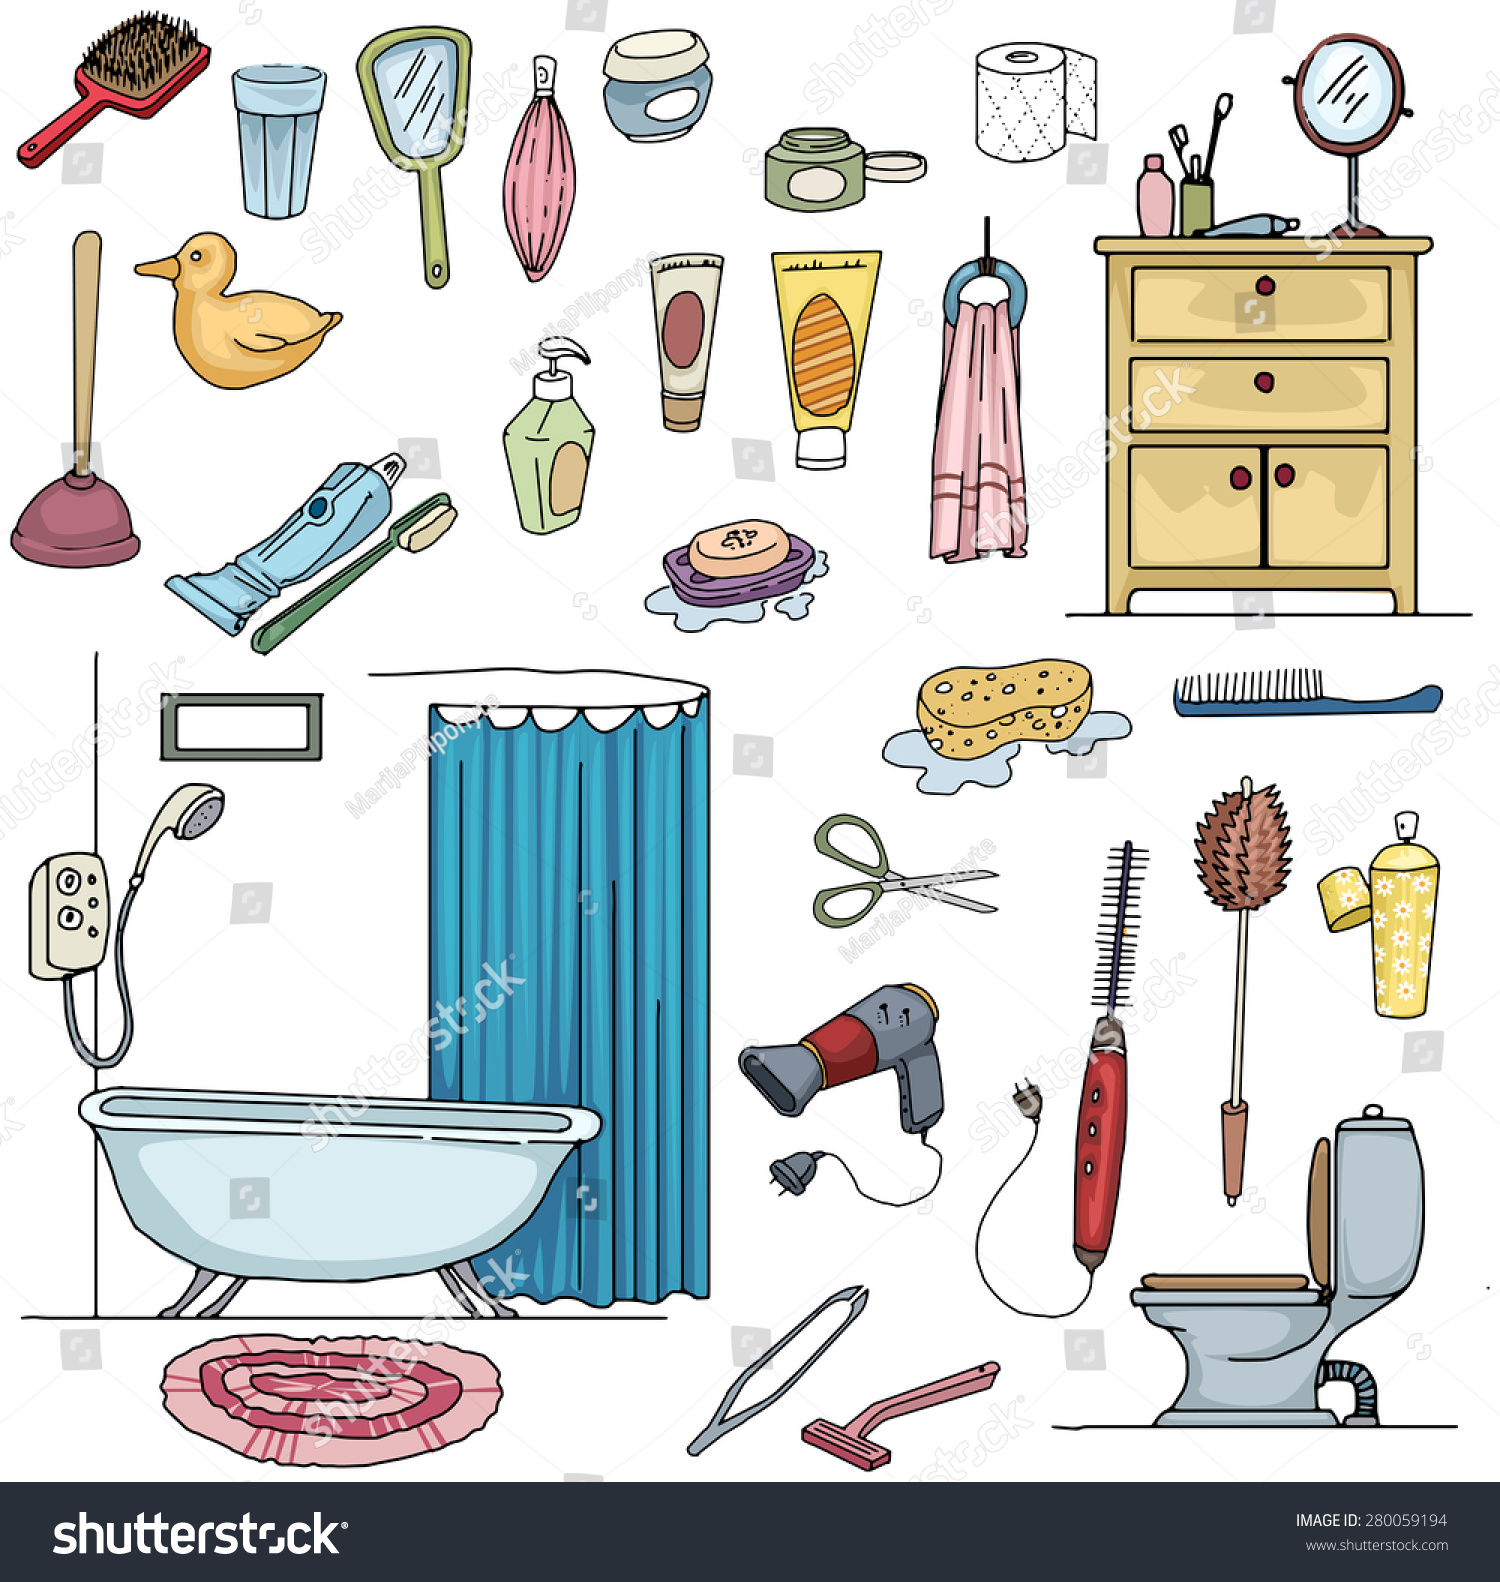 Colorful Hand Drawn Bathroom Clean Hygiene Stock Vector